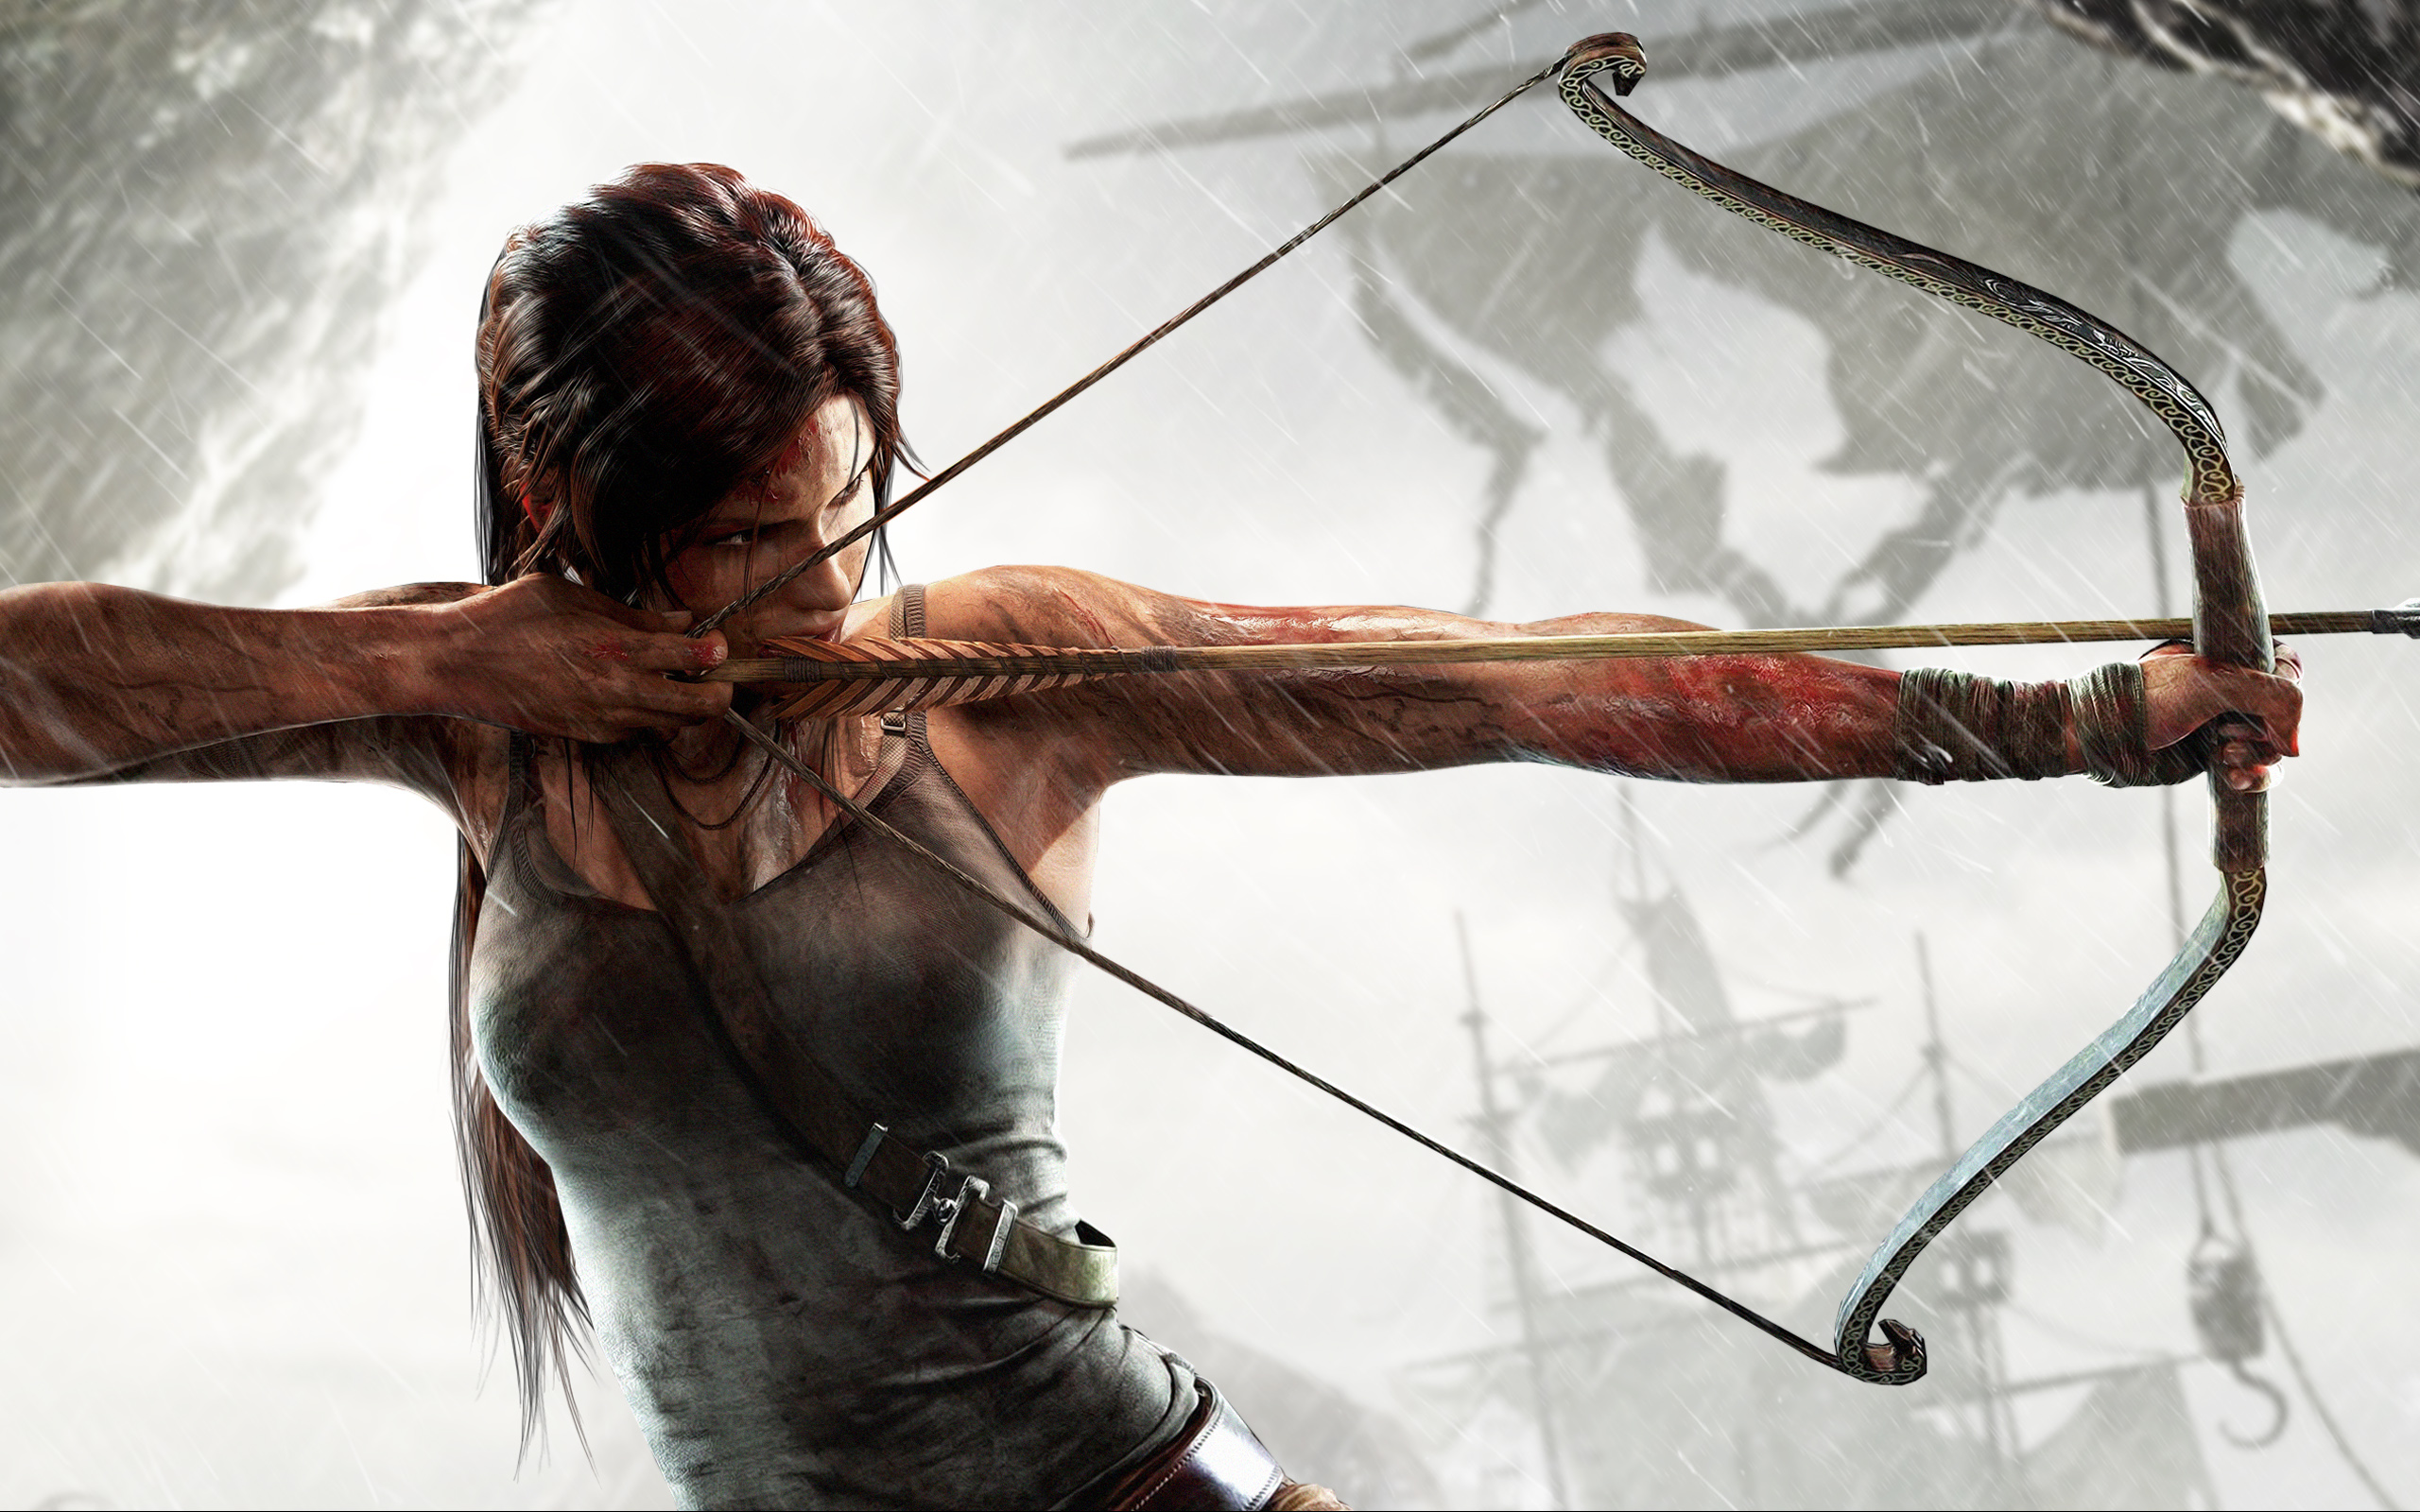 Tomb Raider 2013 Art 1298.22 Kb